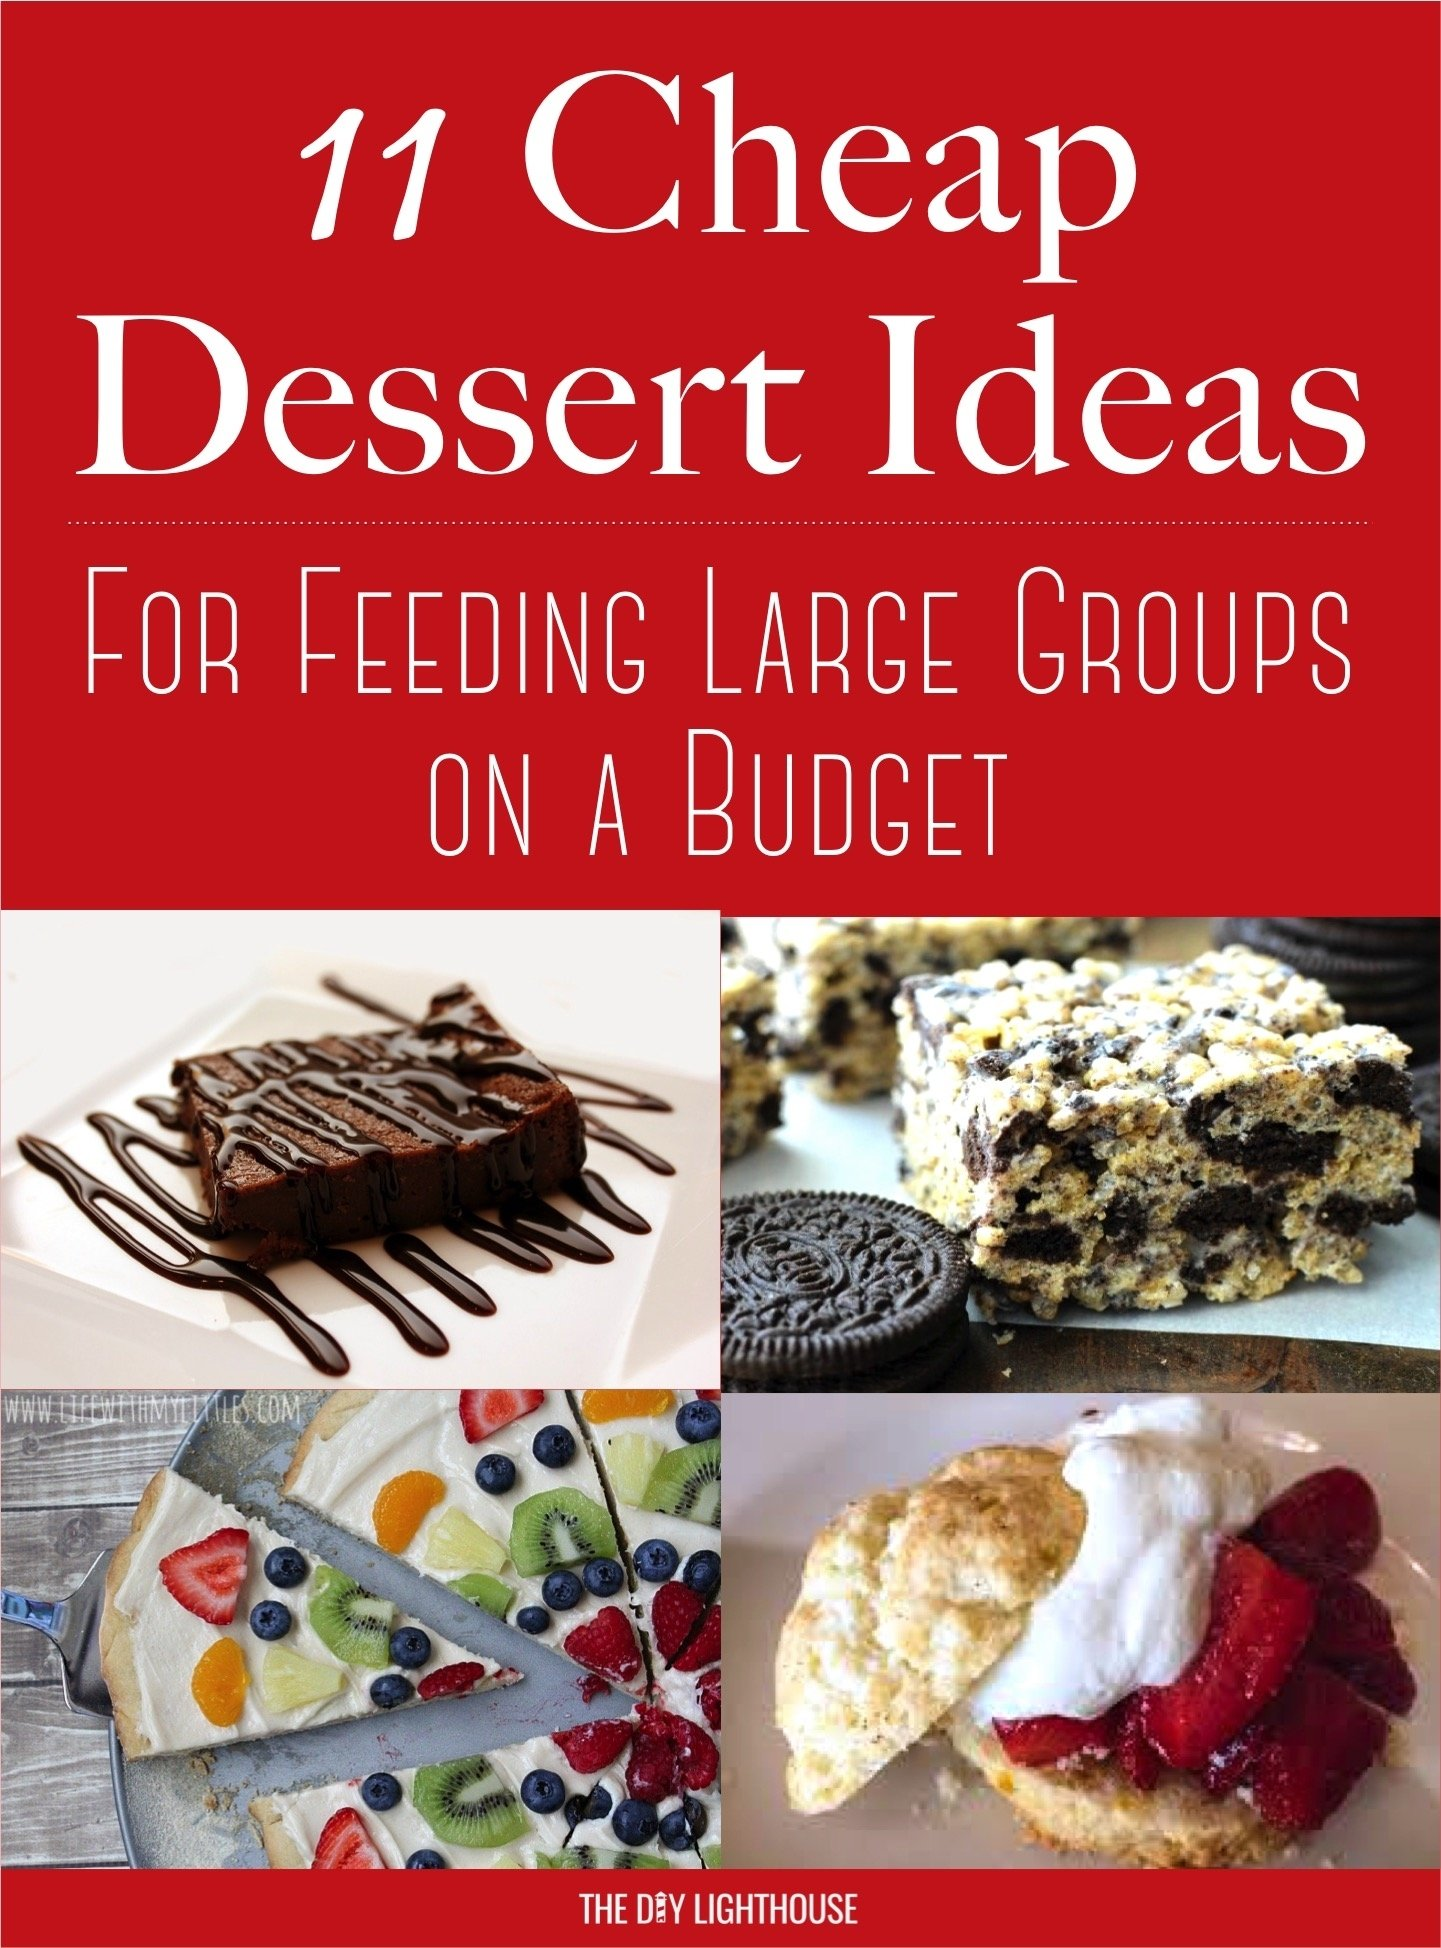 10 Great Dinner Ideas For Large Groups cheap dessert ideas to feed a big group on a budget the diy lighthouse 2021